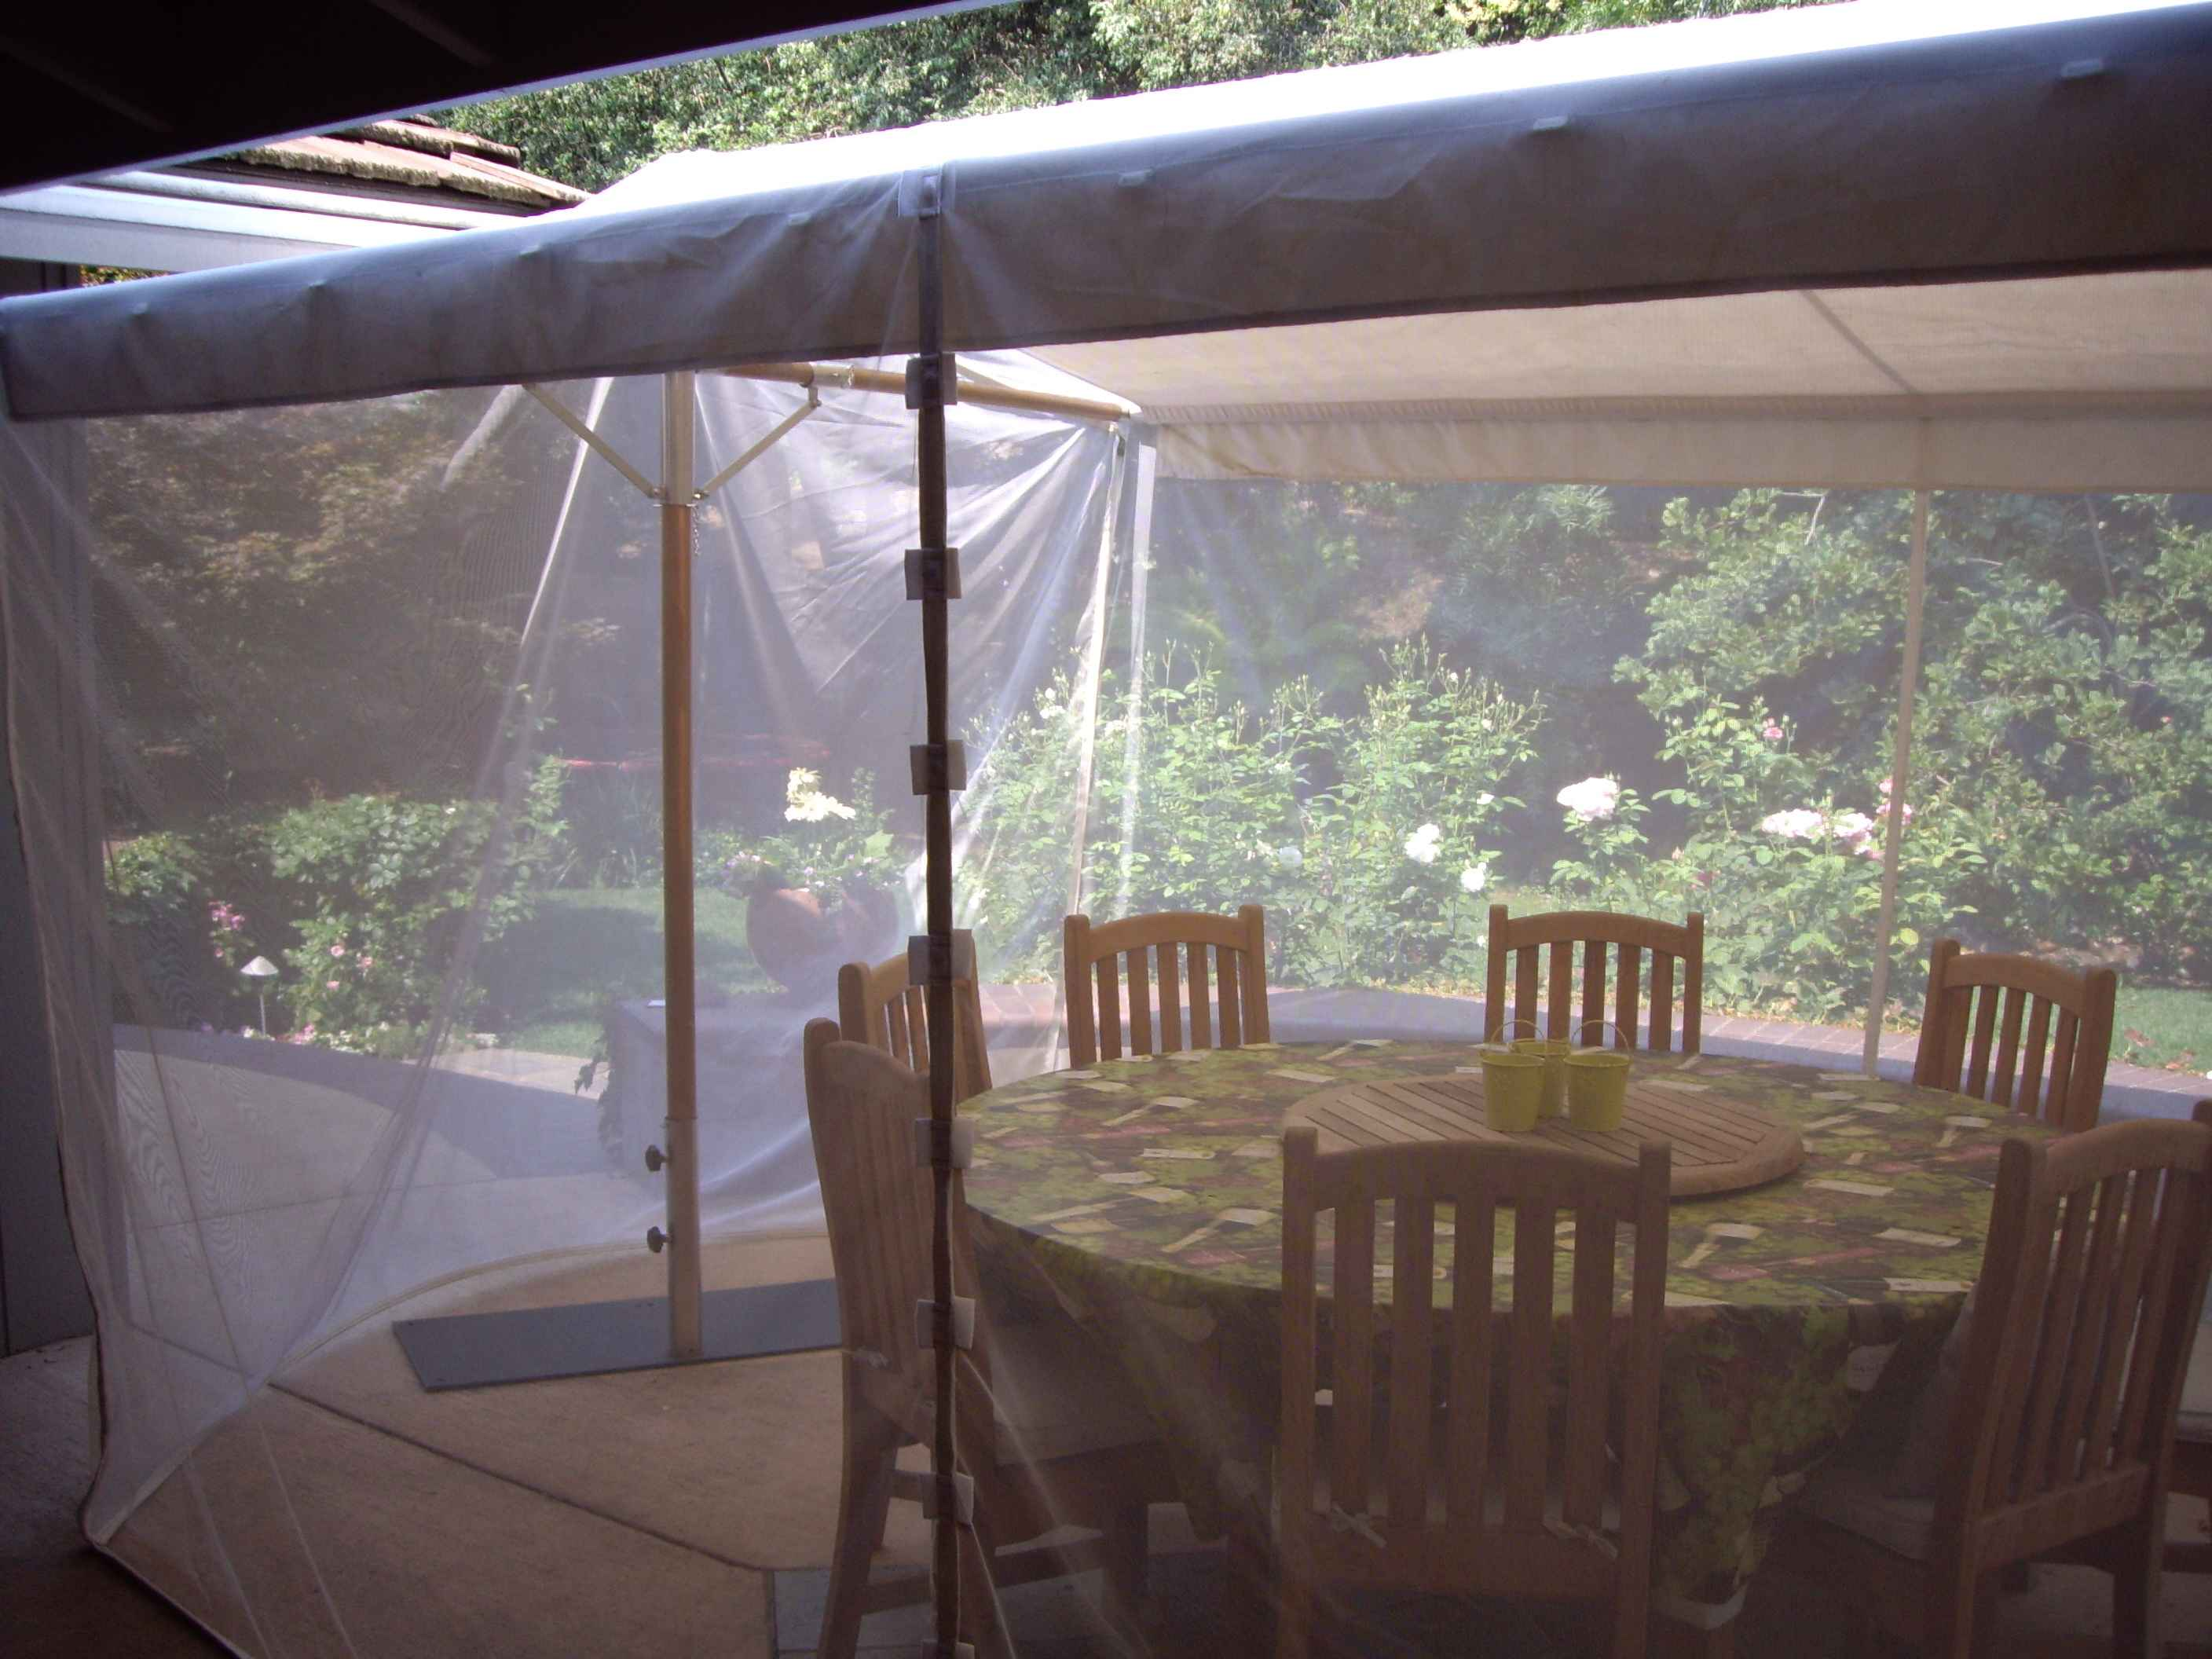 Mosquito Netting Curtains For Patio One White Mosquito Netting Curtain For Patio Or Bedroom